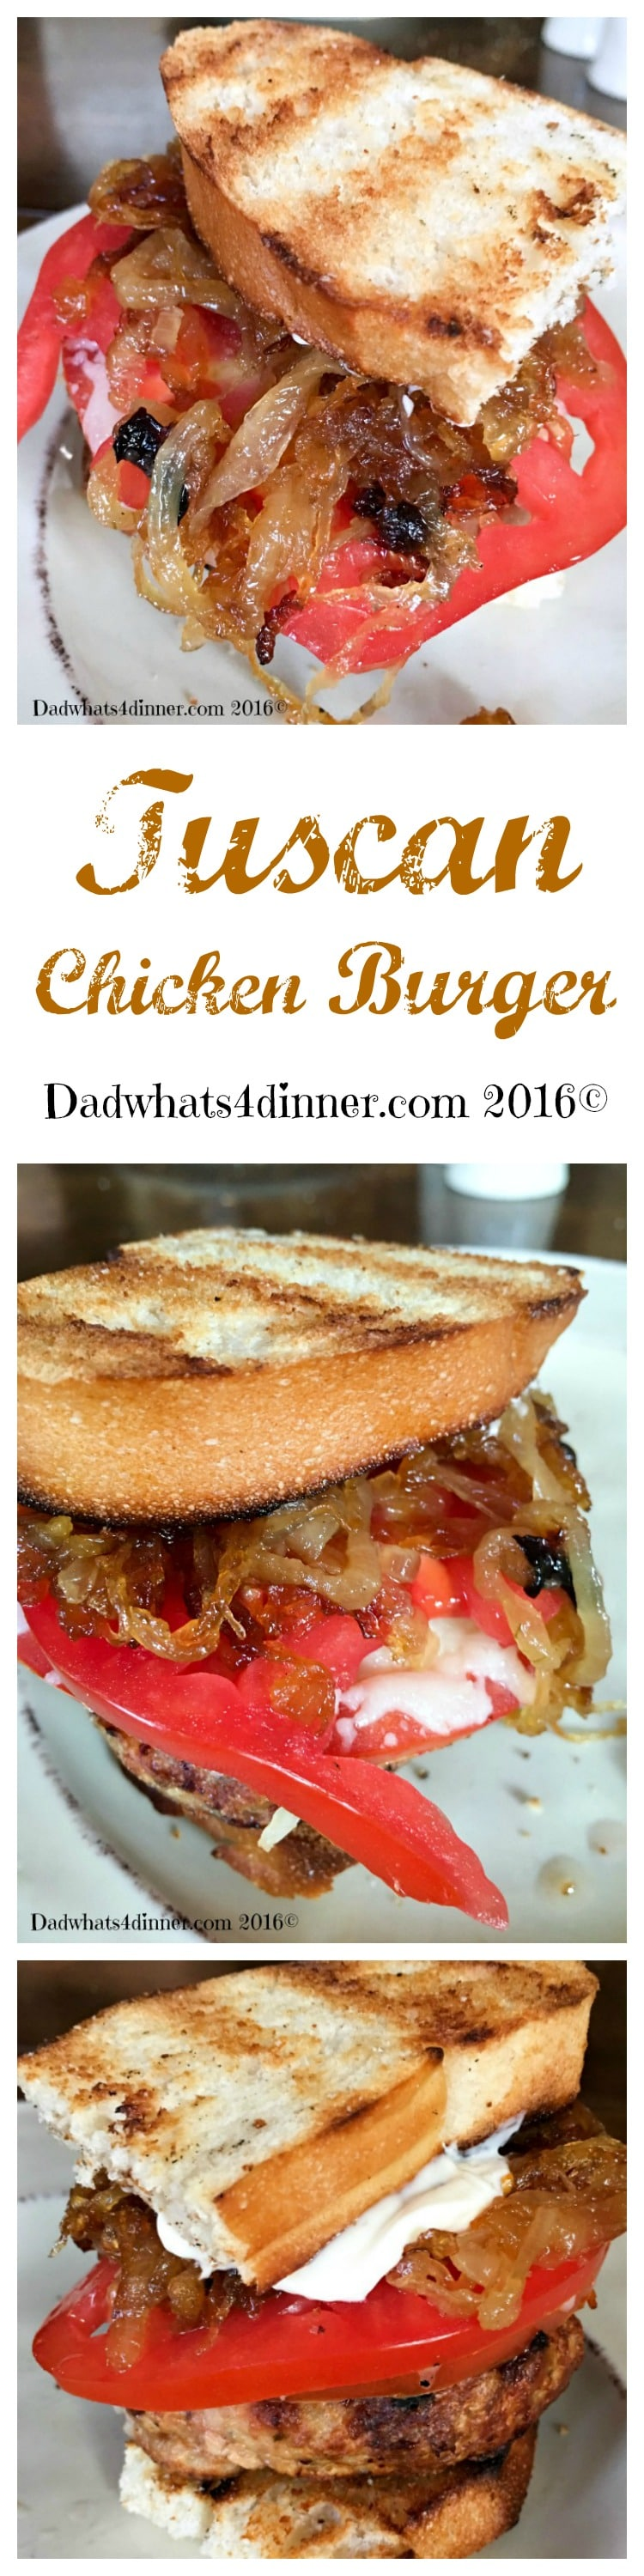 The taste of Italy comes alive in my Tuscan Chicken Burger. Full of Italian seasonings, topped with fresh mozzarella and garden tomatoes. www.dadwhats4dinner.com